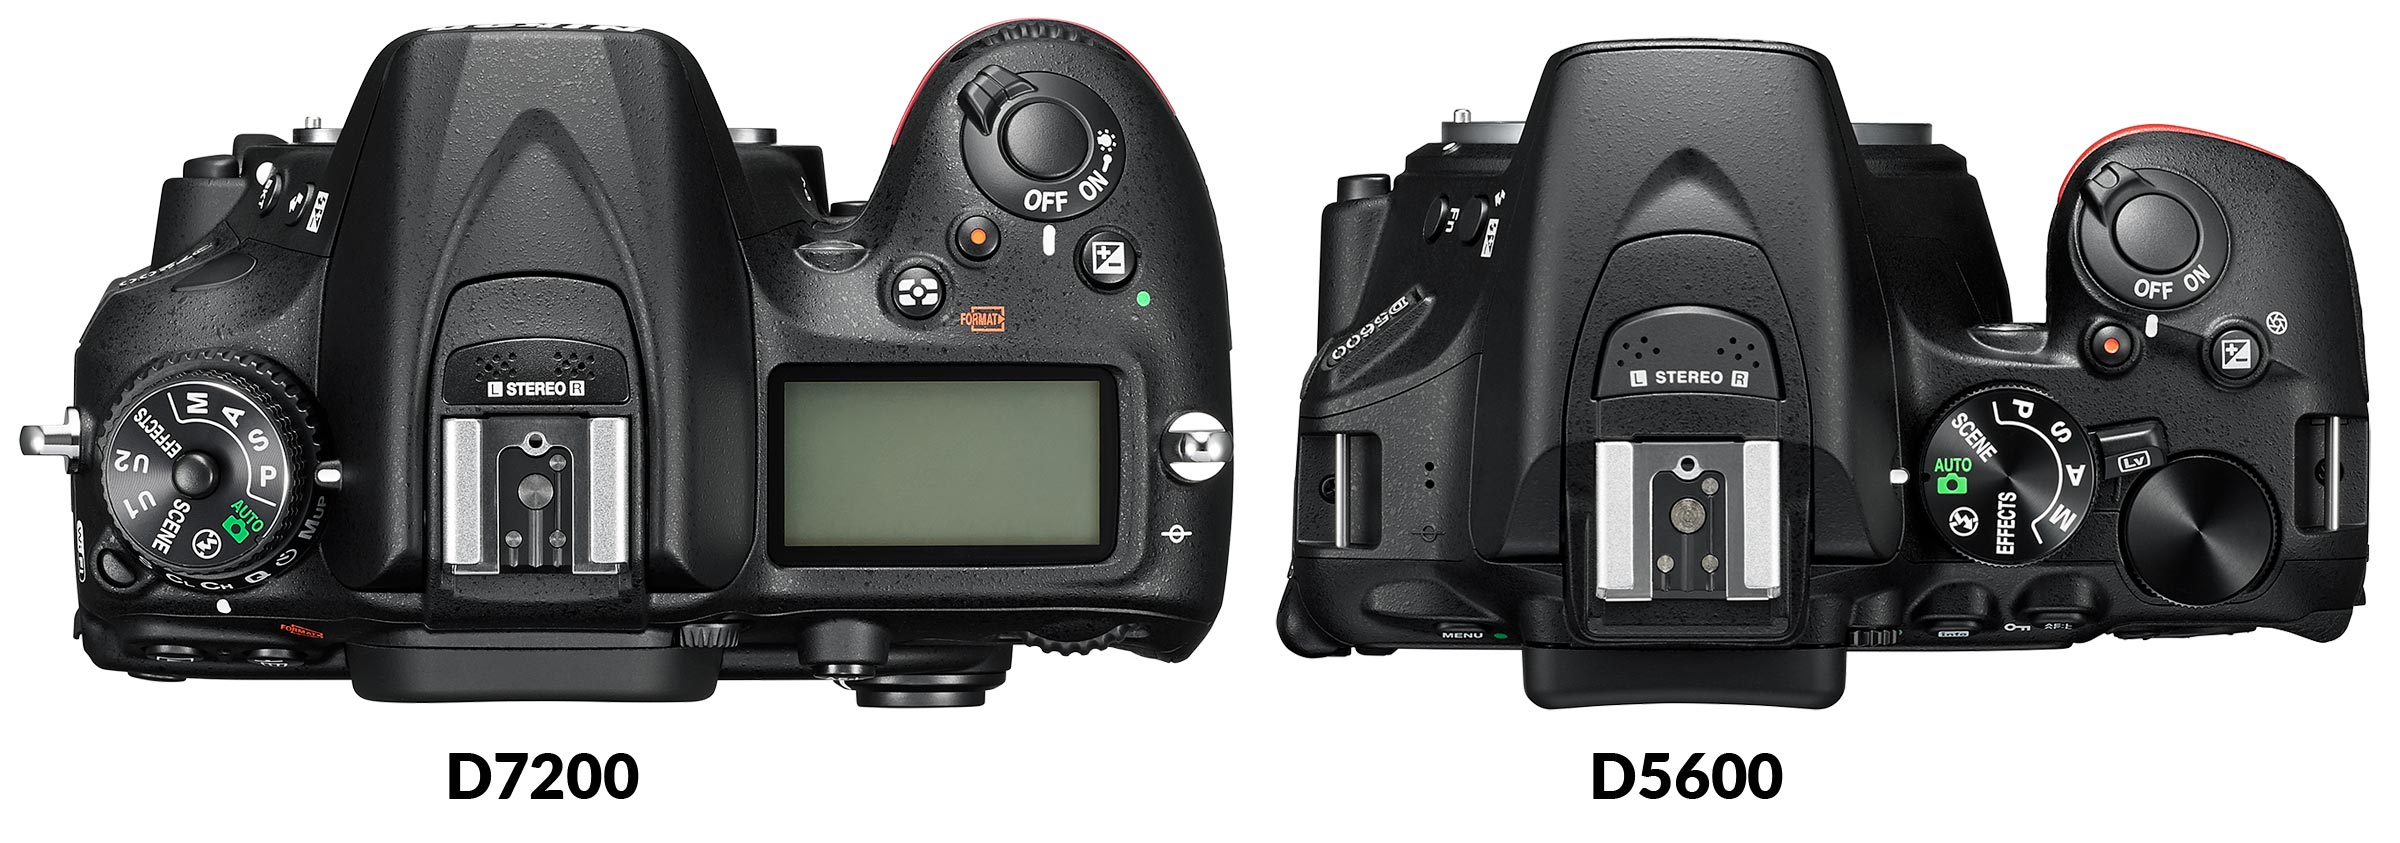 Nikon D5600 vs D7200: Which Should You Buy? – Light And Matter